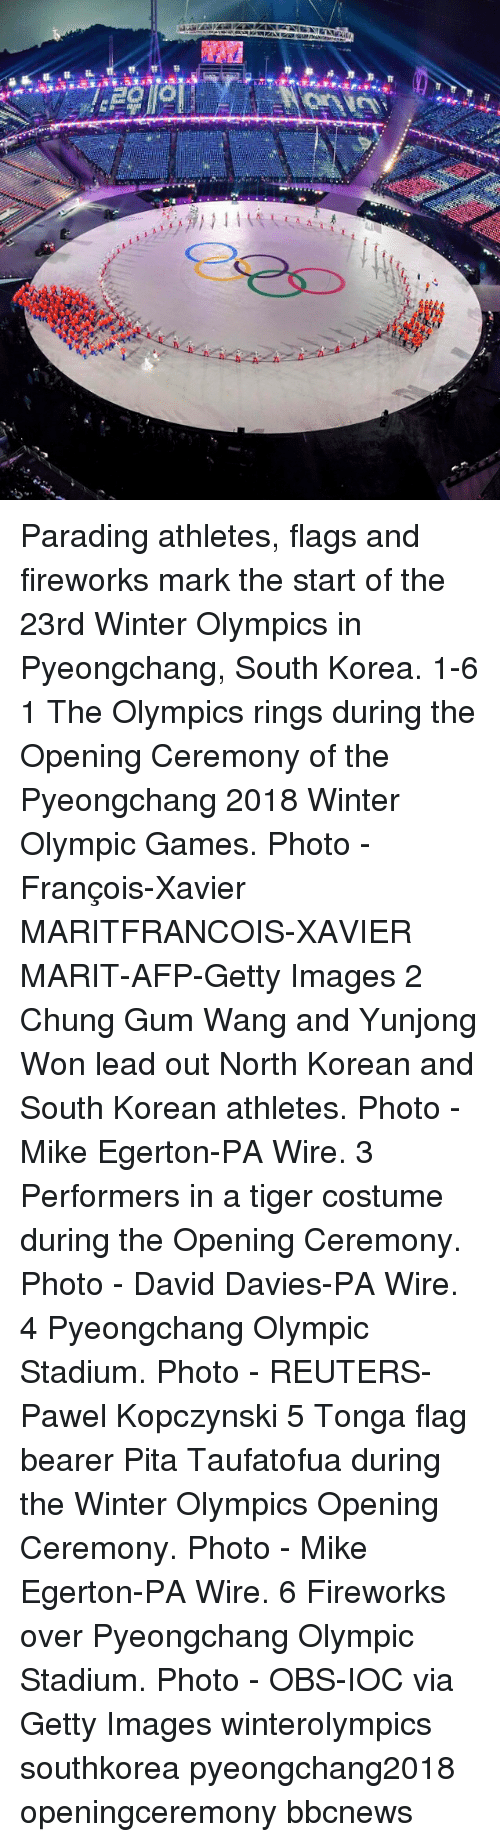 pita: Parading athletes, flags and fireworks mark the start of the 23rd Winter Olympics in Pyeongchang, South Korea. 1-6 1 The Olympics rings during the Opening Ceremony of the Pyeongchang 2018 Winter Olympic Games. Photo - François-Xavier MARITFRANCOIS-XAVIER MARIT-AFP-Getty Images 2 Chung Gum Wang and Yunjong Won lead out North Korean and South Korean athletes. Photo - Mike Egerton-PA Wire. 3 Performers in a tiger costume during the Opening Ceremony. Photo - David Davies-PA Wire. 4 Pyeongchang Olympic Stadium. Photo - REUTERS-Pawel Kopczynski 5 Tonga flag bearer Pita Taufatofua during the Winter Olympics Opening Ceremony. Photo - Mike Egerton-PA Wire. 6 Fireworks over Pyeongchang Olympic Stadium. Photo - OBS-IOC via Getty Images winterolympics southkorea pyeongchang2018 openingceremony bbcnews